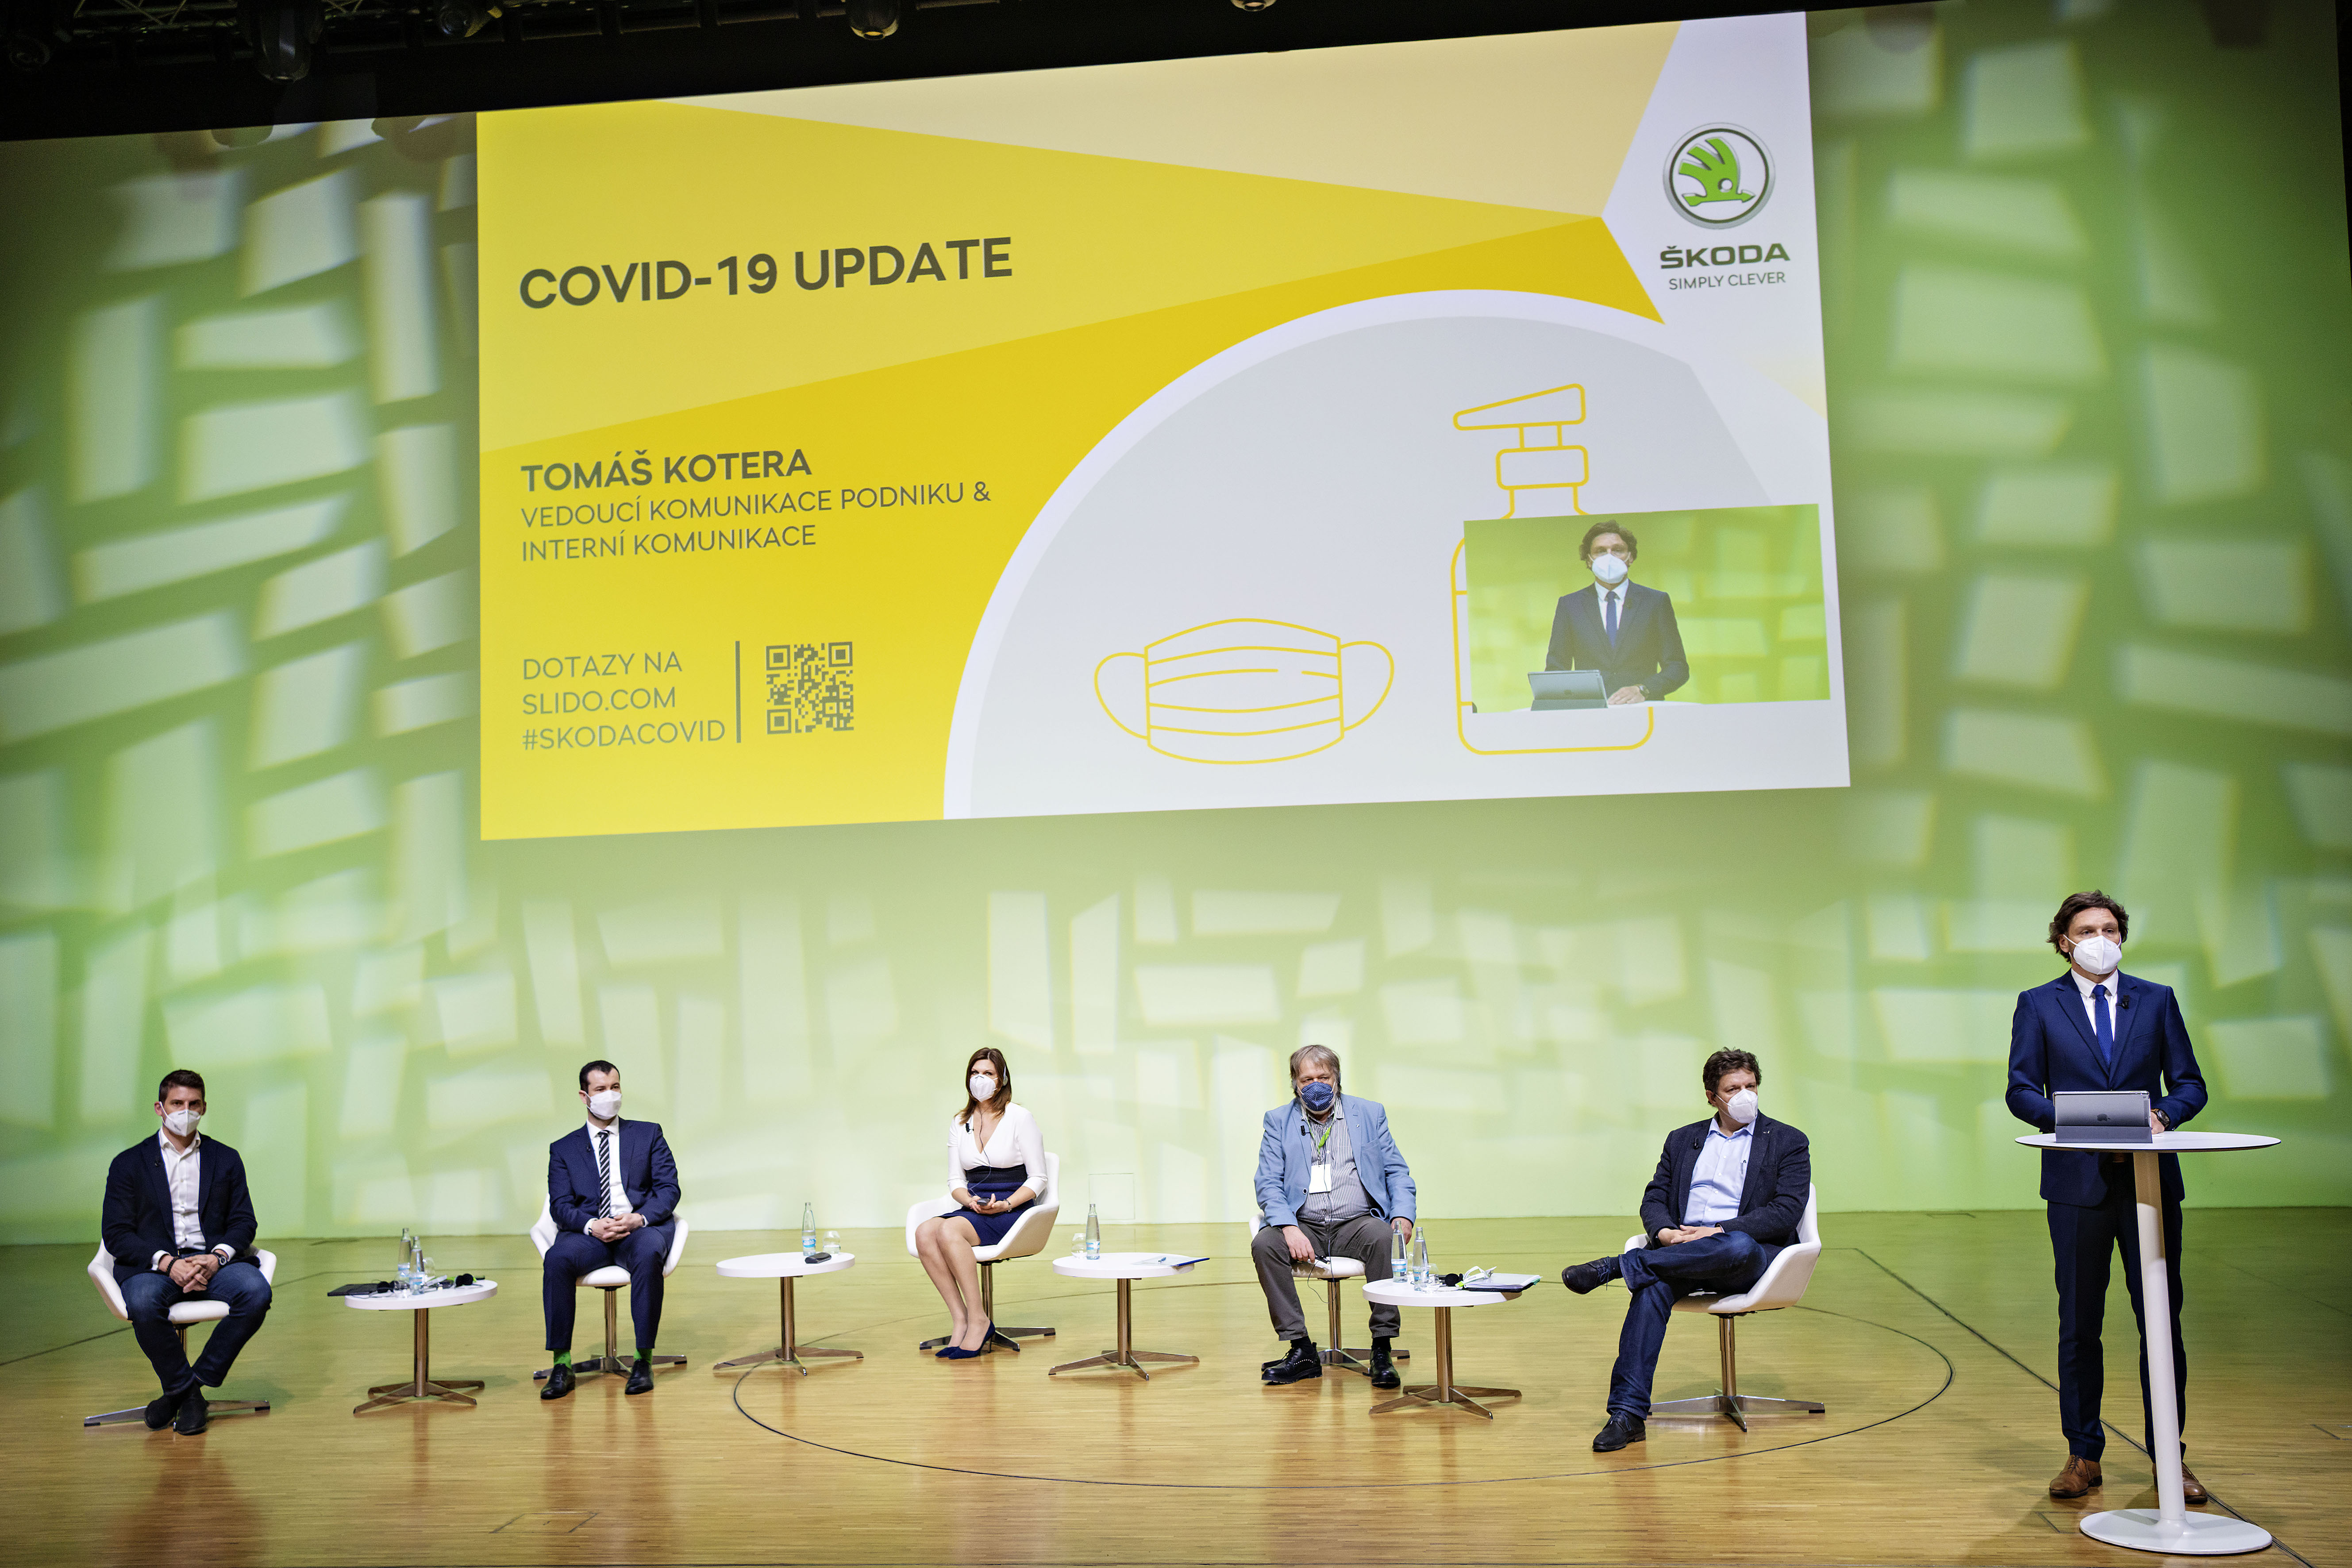 Update on COVID-19: recorded broadcast of the SKODA AUTO online roundtable - Image 1